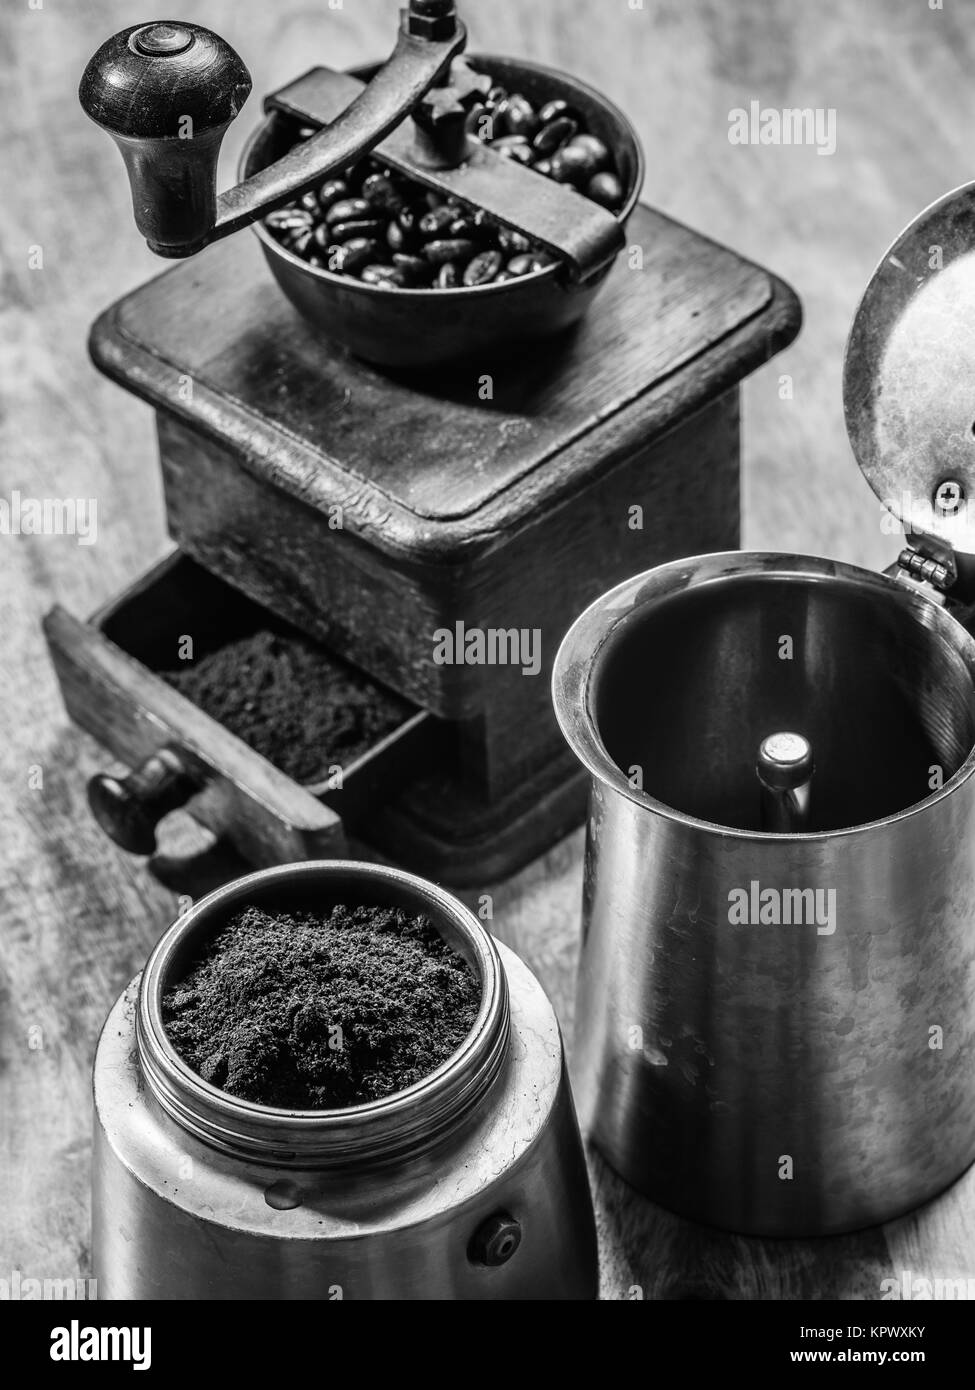 Moka express coffee pot and grinder - Stock Image